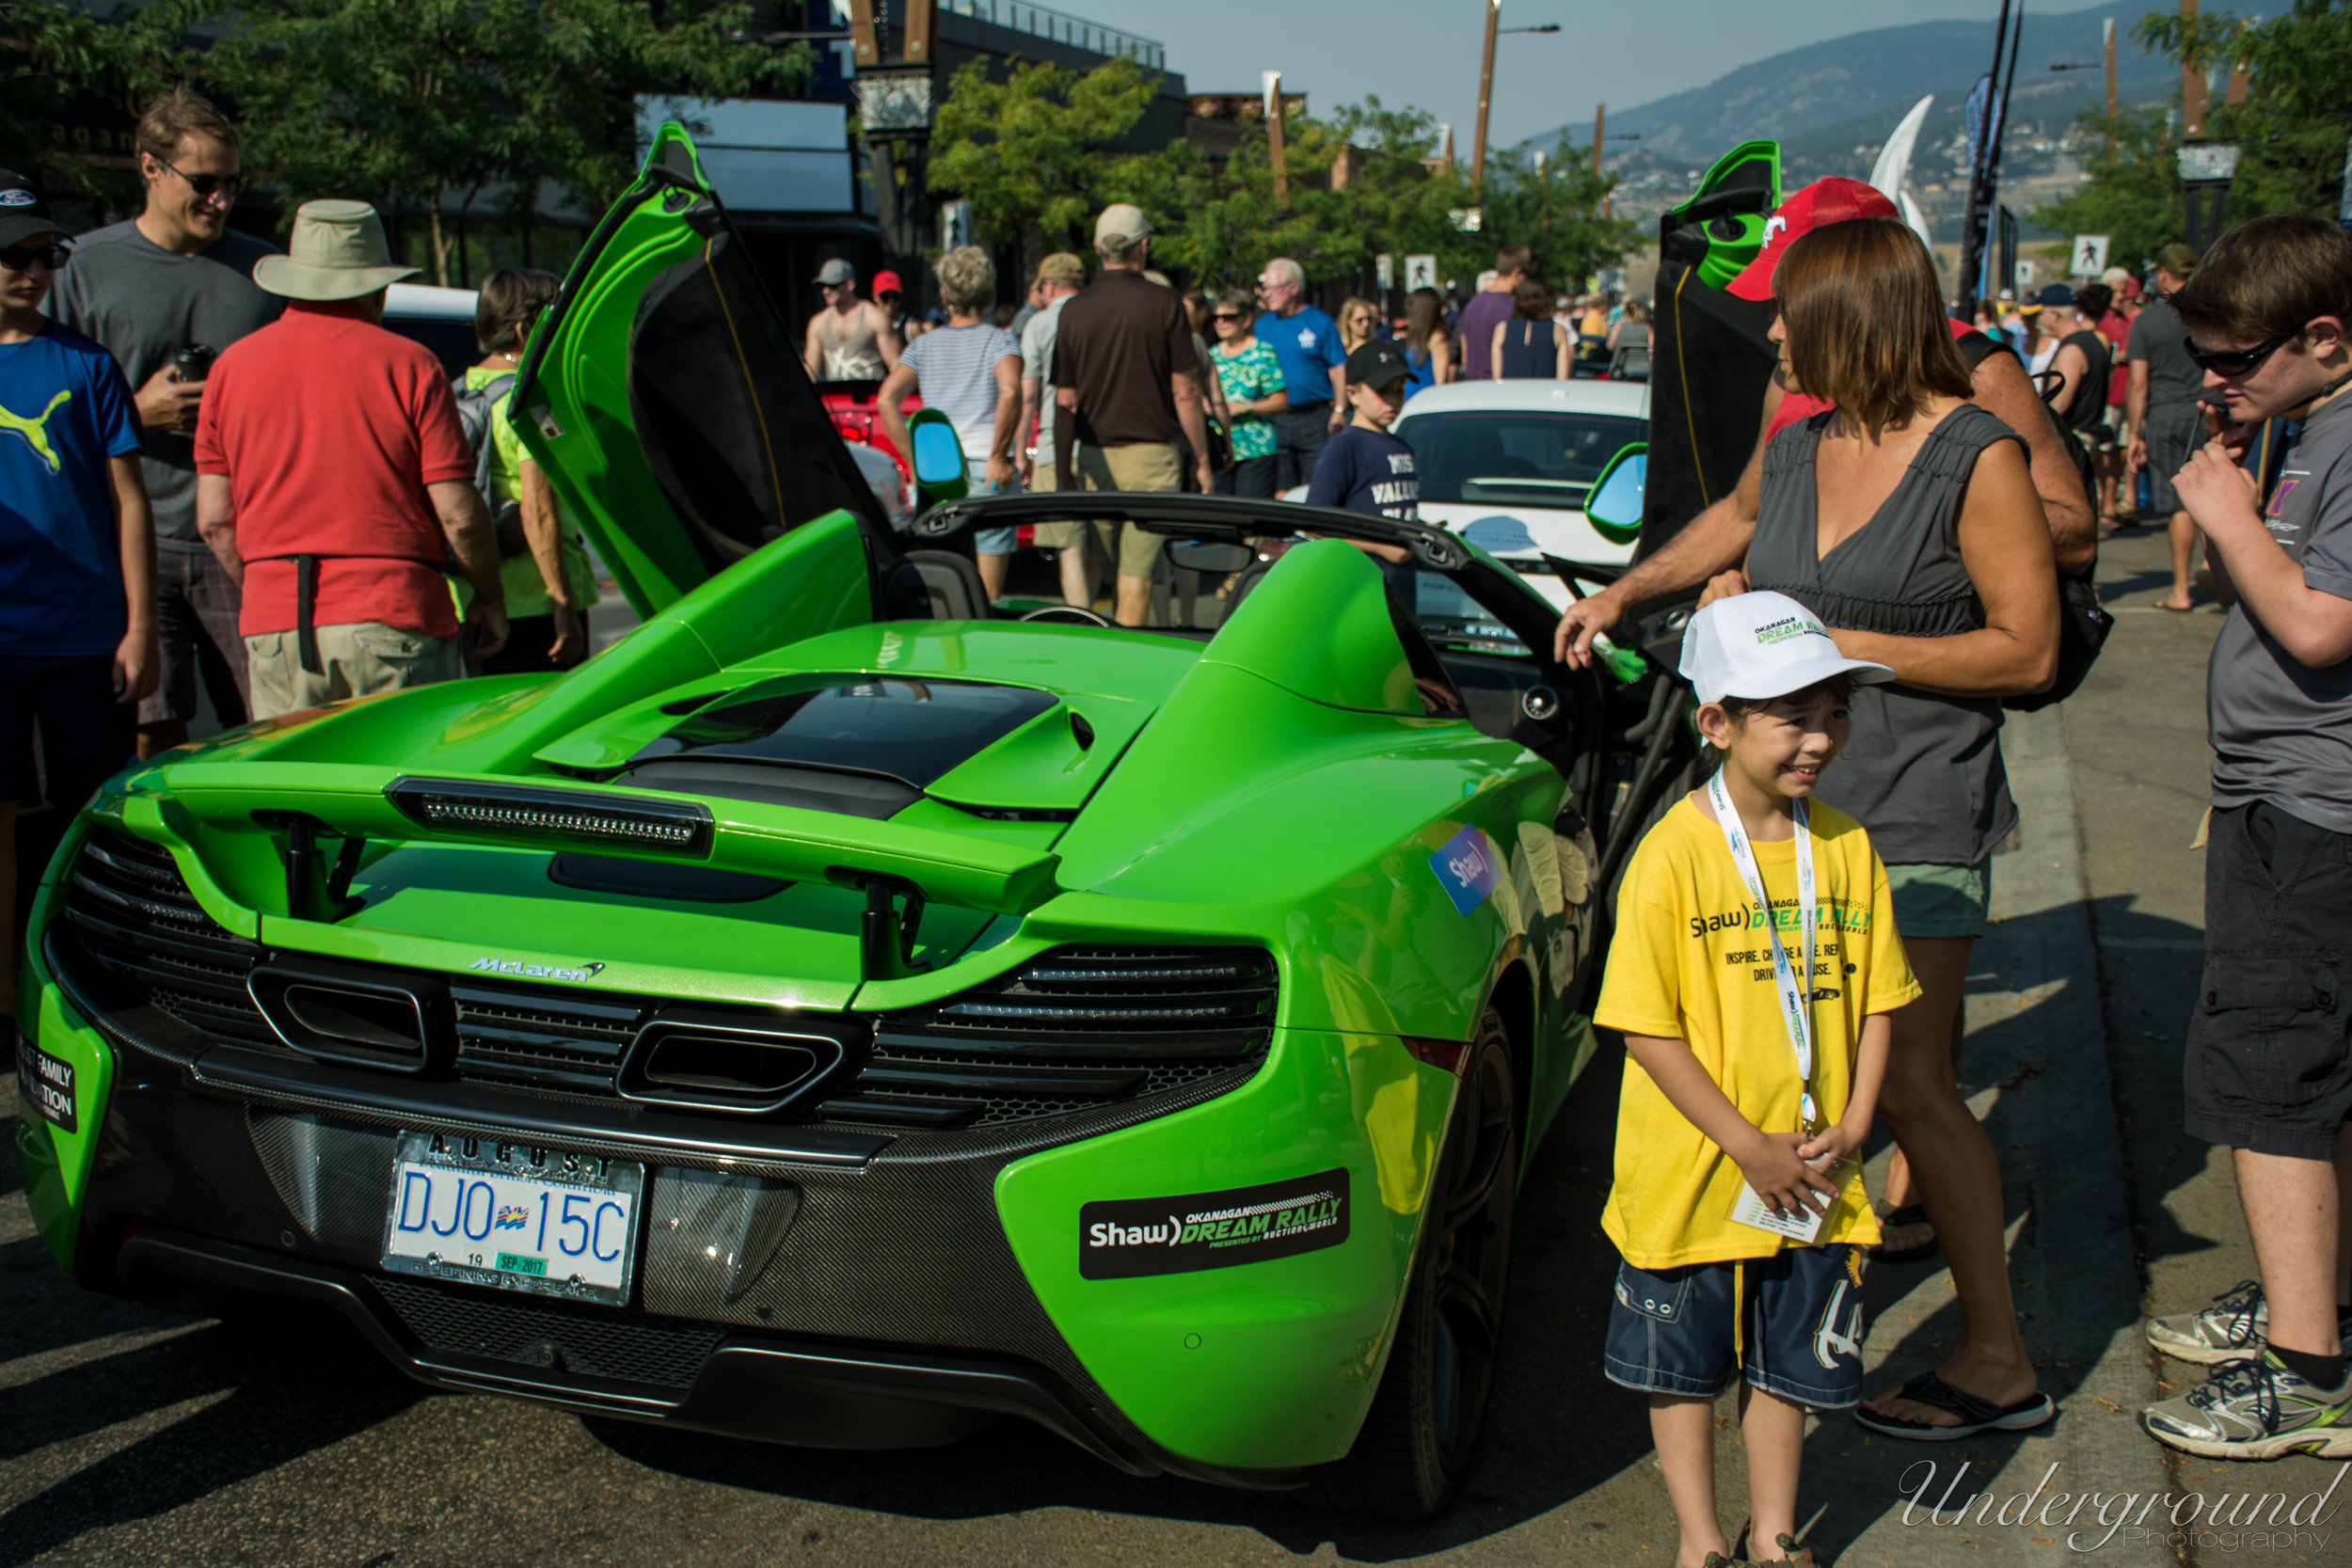 In the early stages of the event I noticed two major themes among the kids, both of which I found to be equally incredible. The first being the kid's faces when they saw the cars they were about the co-pilot. They literally lit up.